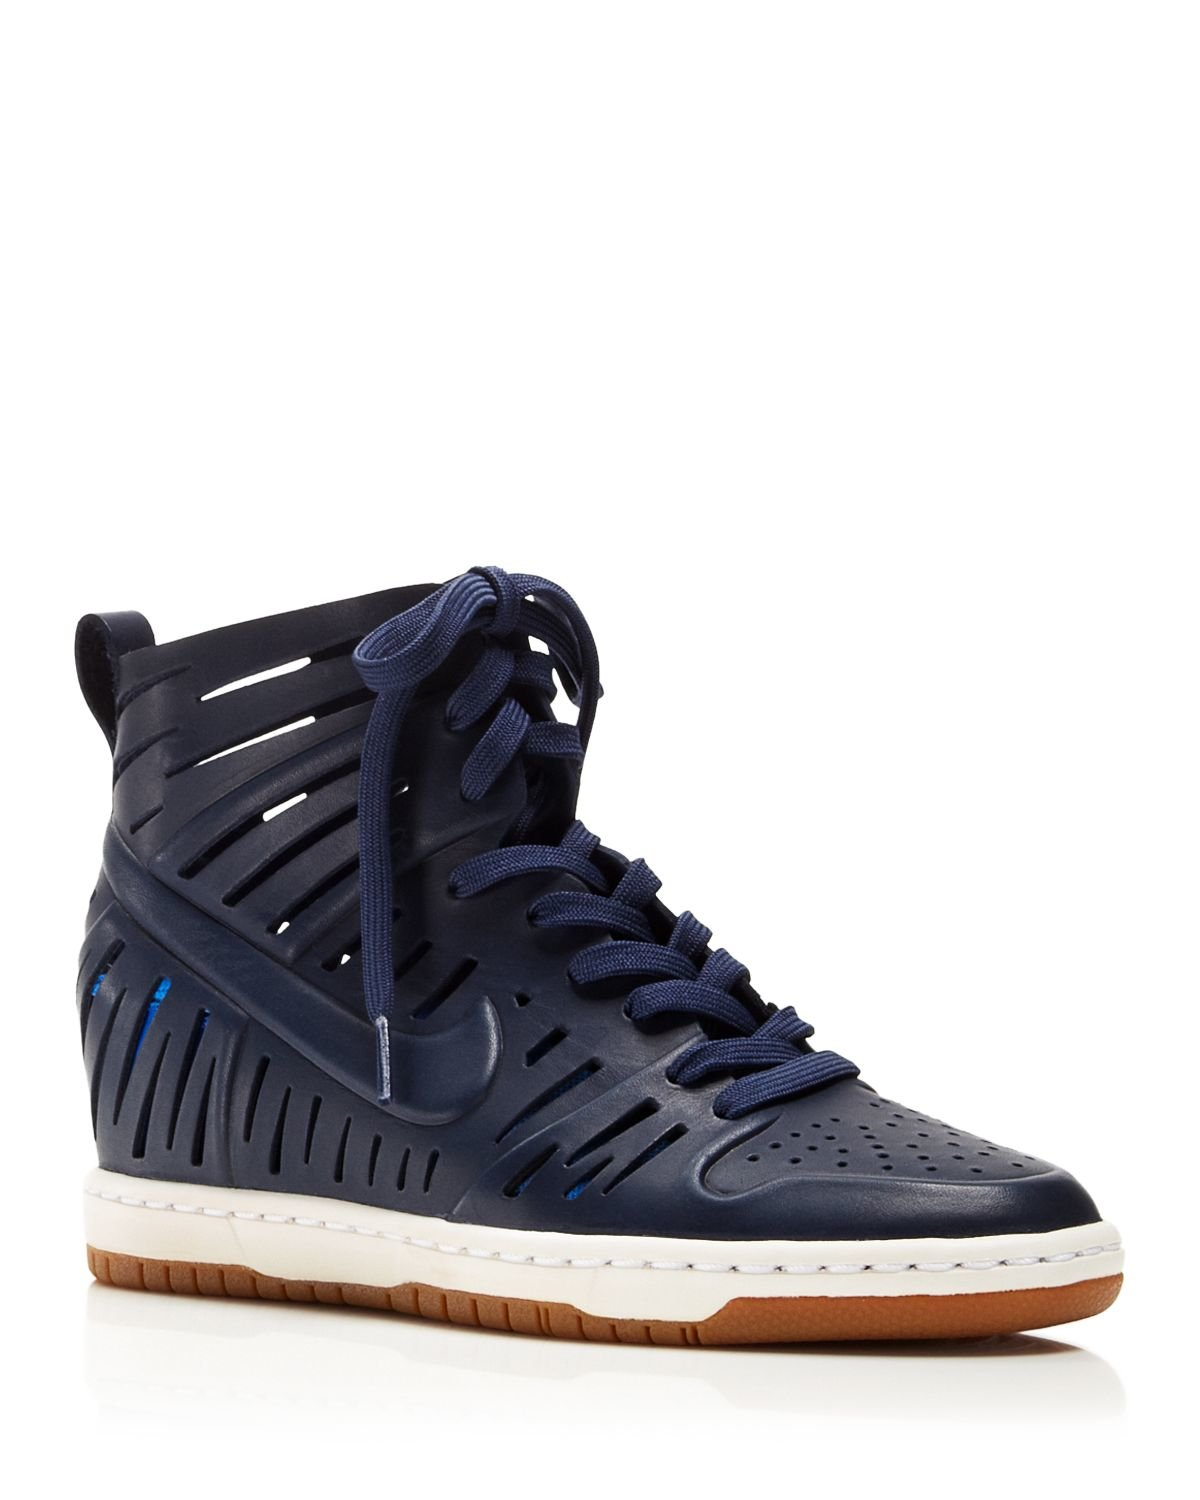 nike lace up wedge sneakers women 39 s dunk sky hi 2 0 joli in blue lyst. Black Bedroom Furniture Sets. Home Design Ideas